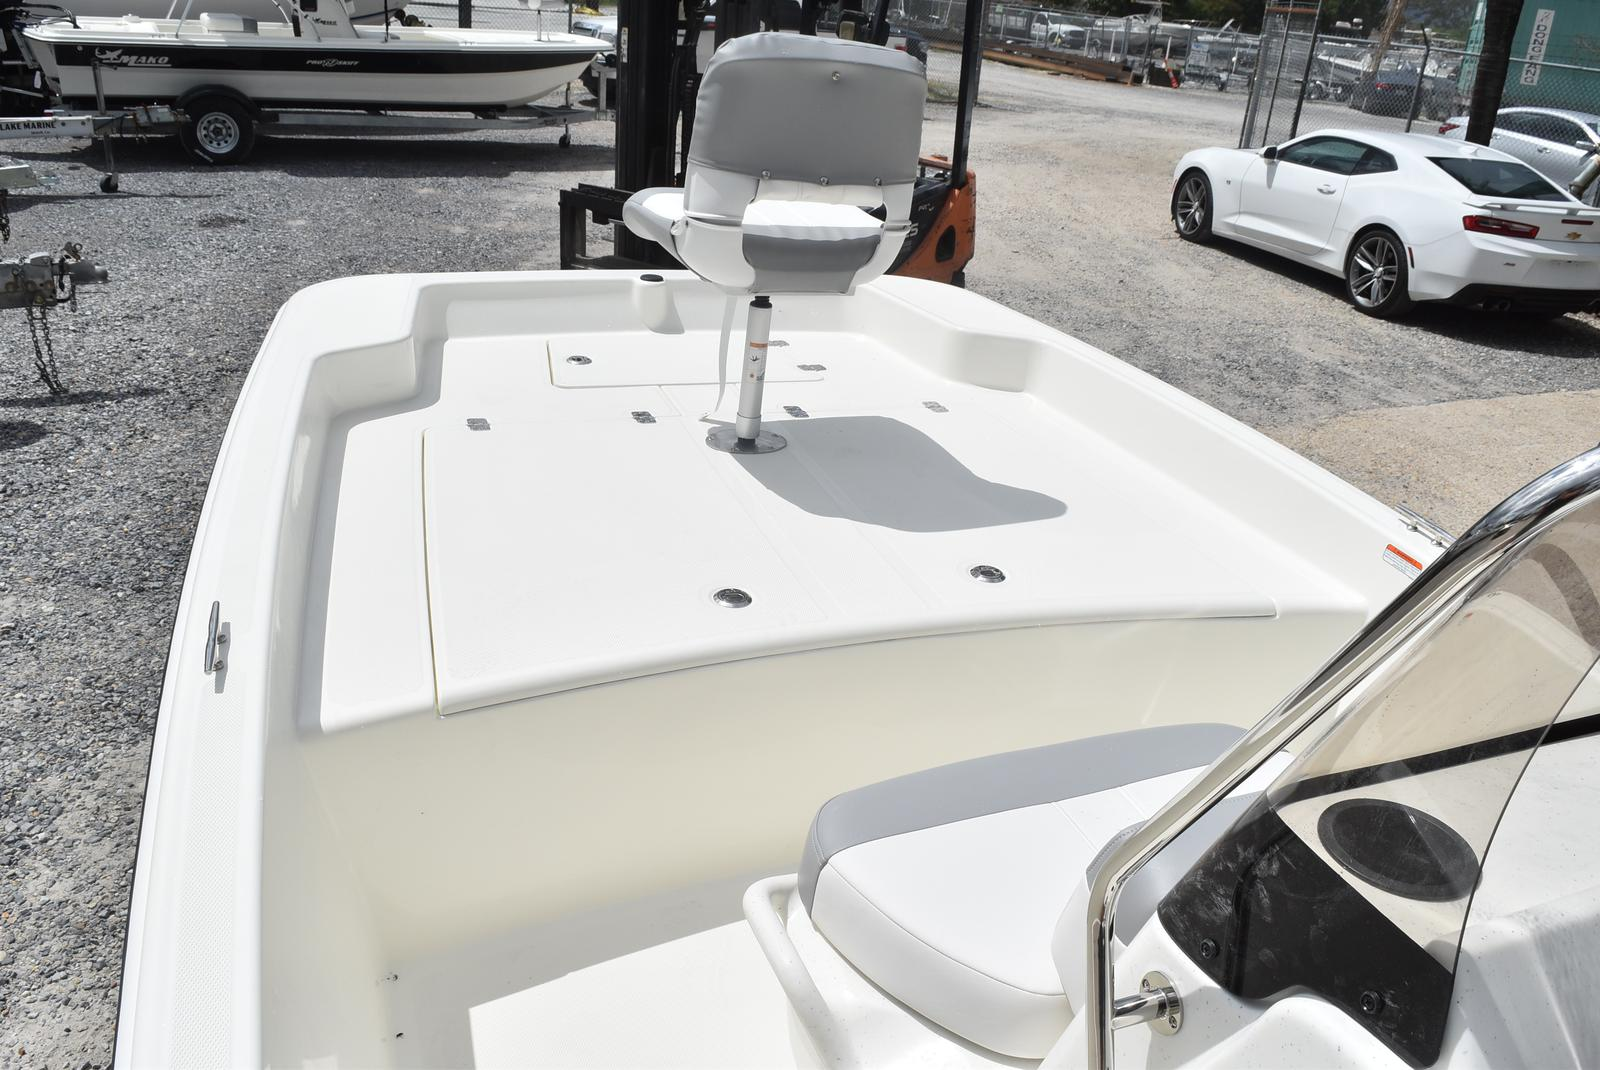 2020 Mako boat for sale, model of the boat is Pro Skiff 17, 75 ELPT & Image # 433 of 702